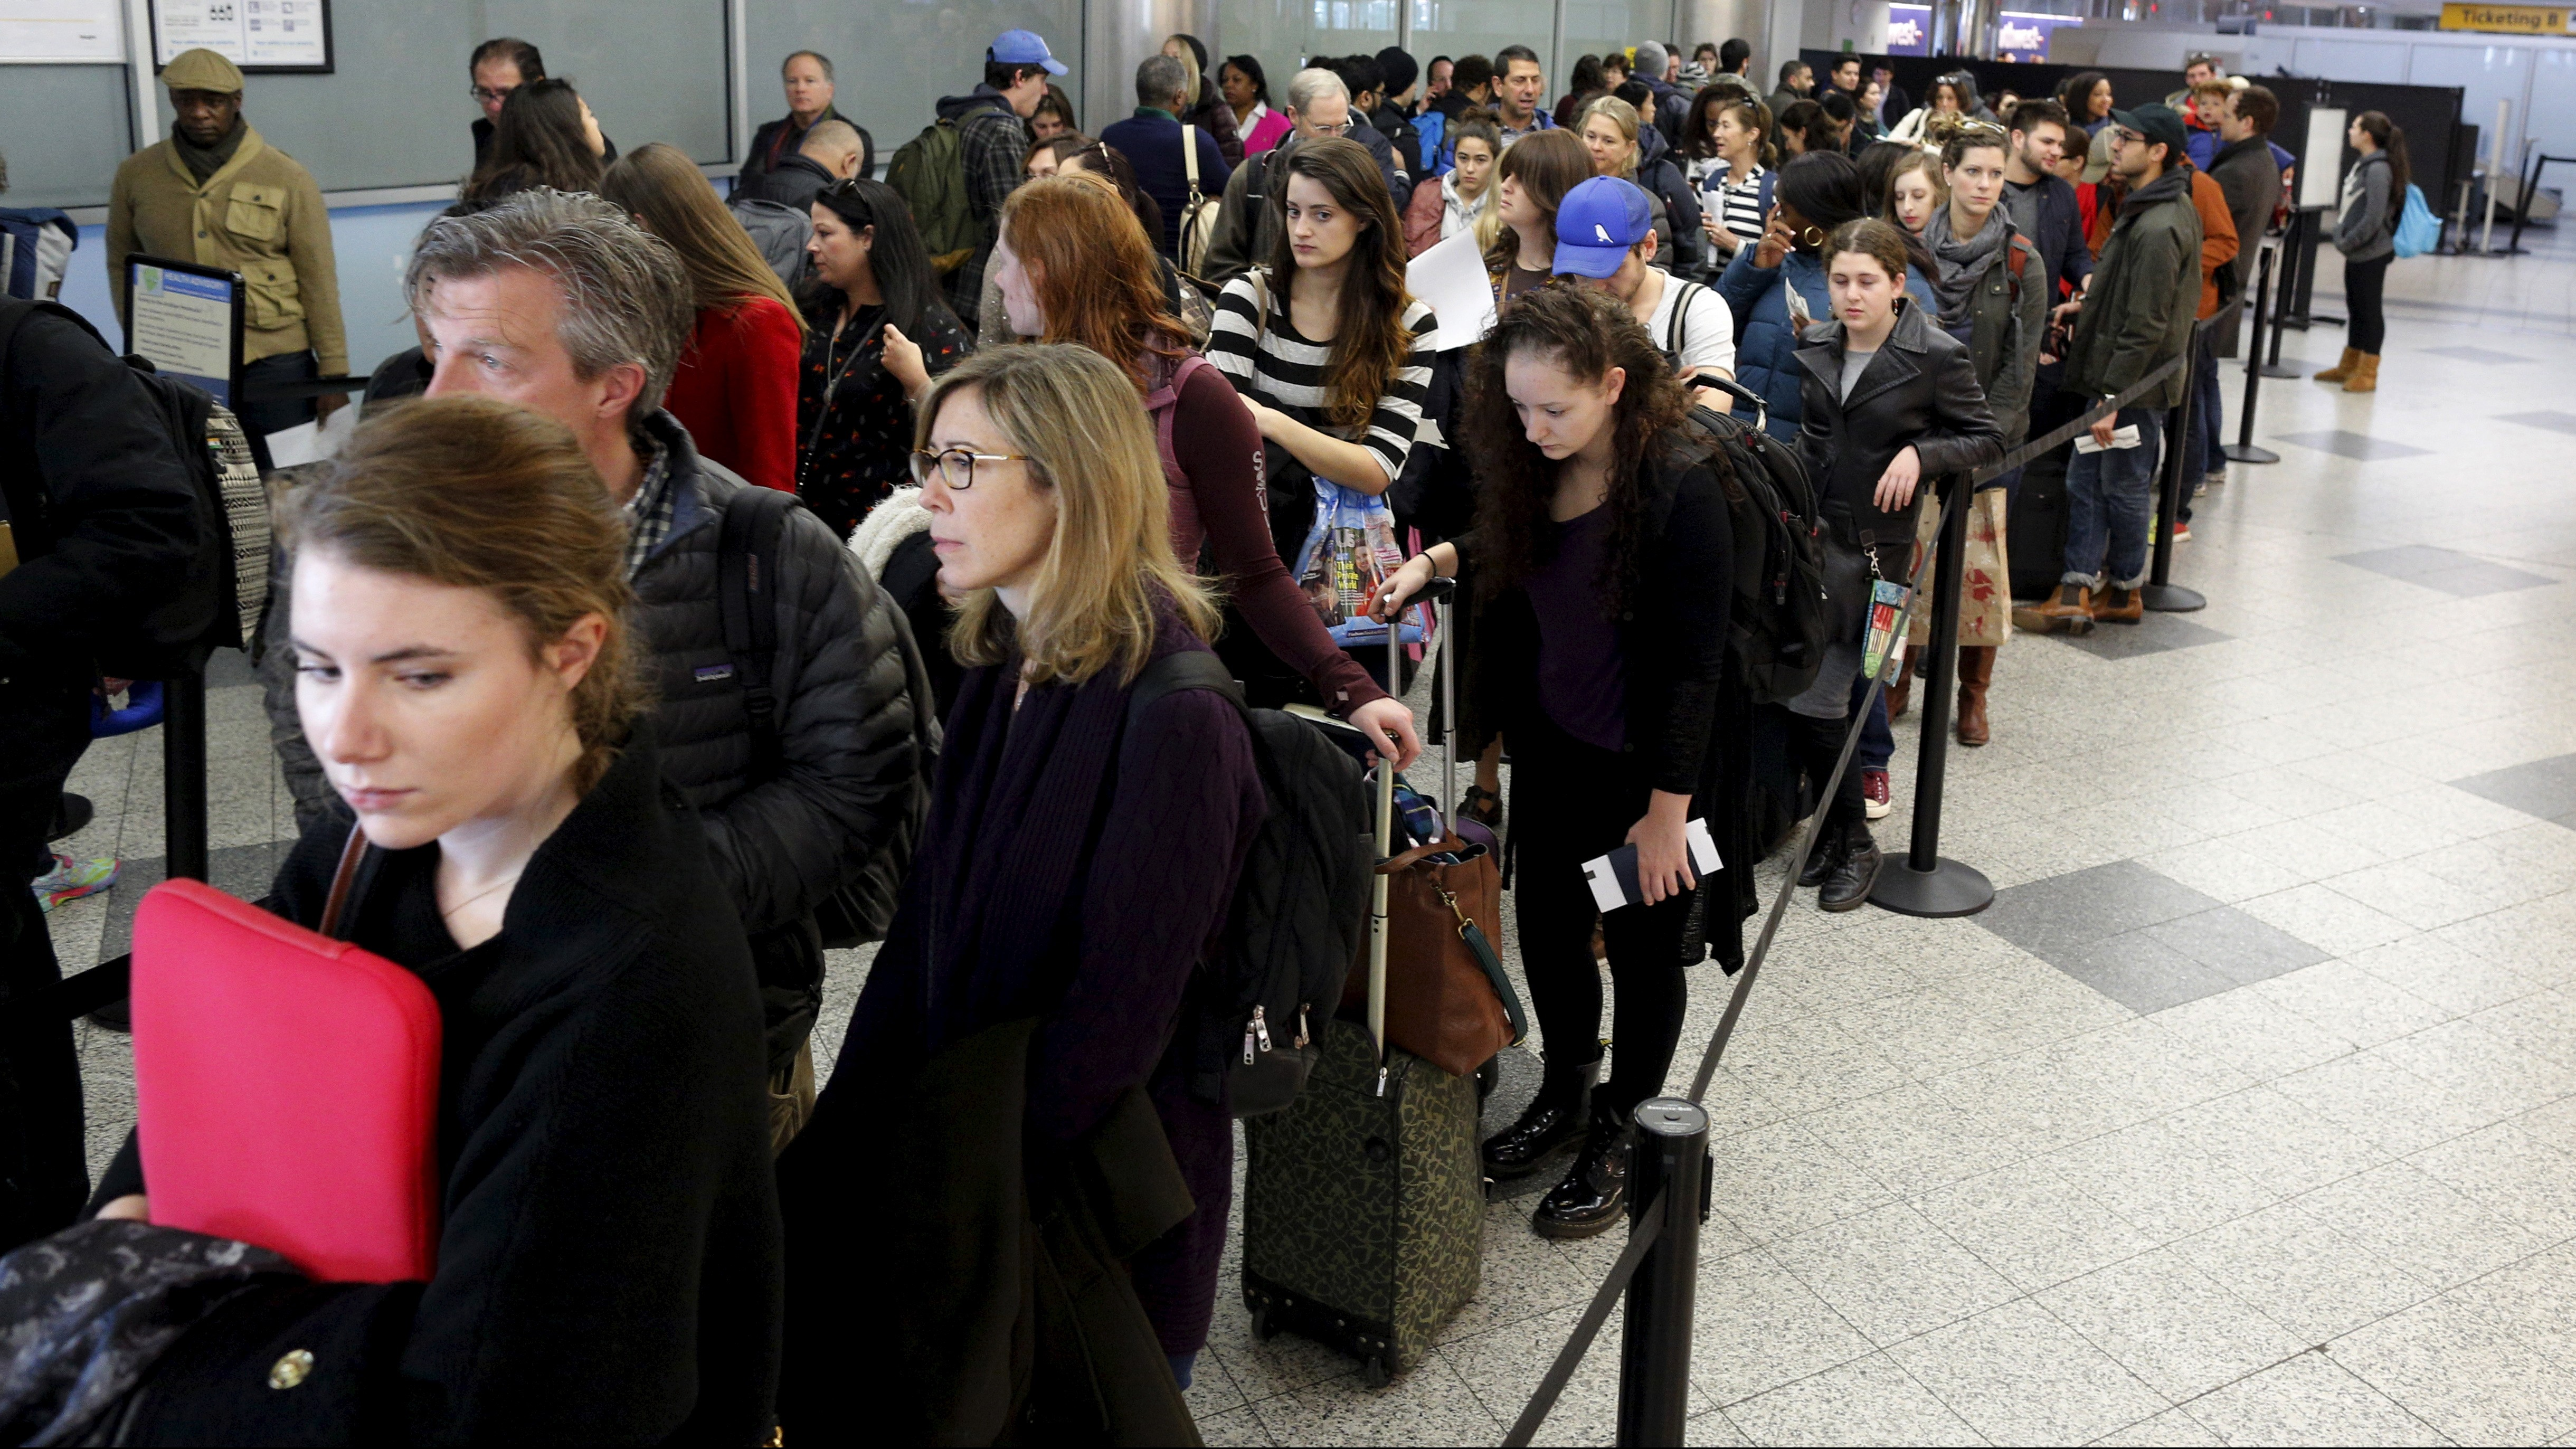 Travelers wait in line at a security checkpoint at La Guardia Airport in New York November 25, 2015. Millions of Americans embarked on their Thanksgiving travels on Wednesday with security in airports, at New York City's parade festivities, and other venues expected to be heightened amid jitters after the Paris attacks last week.